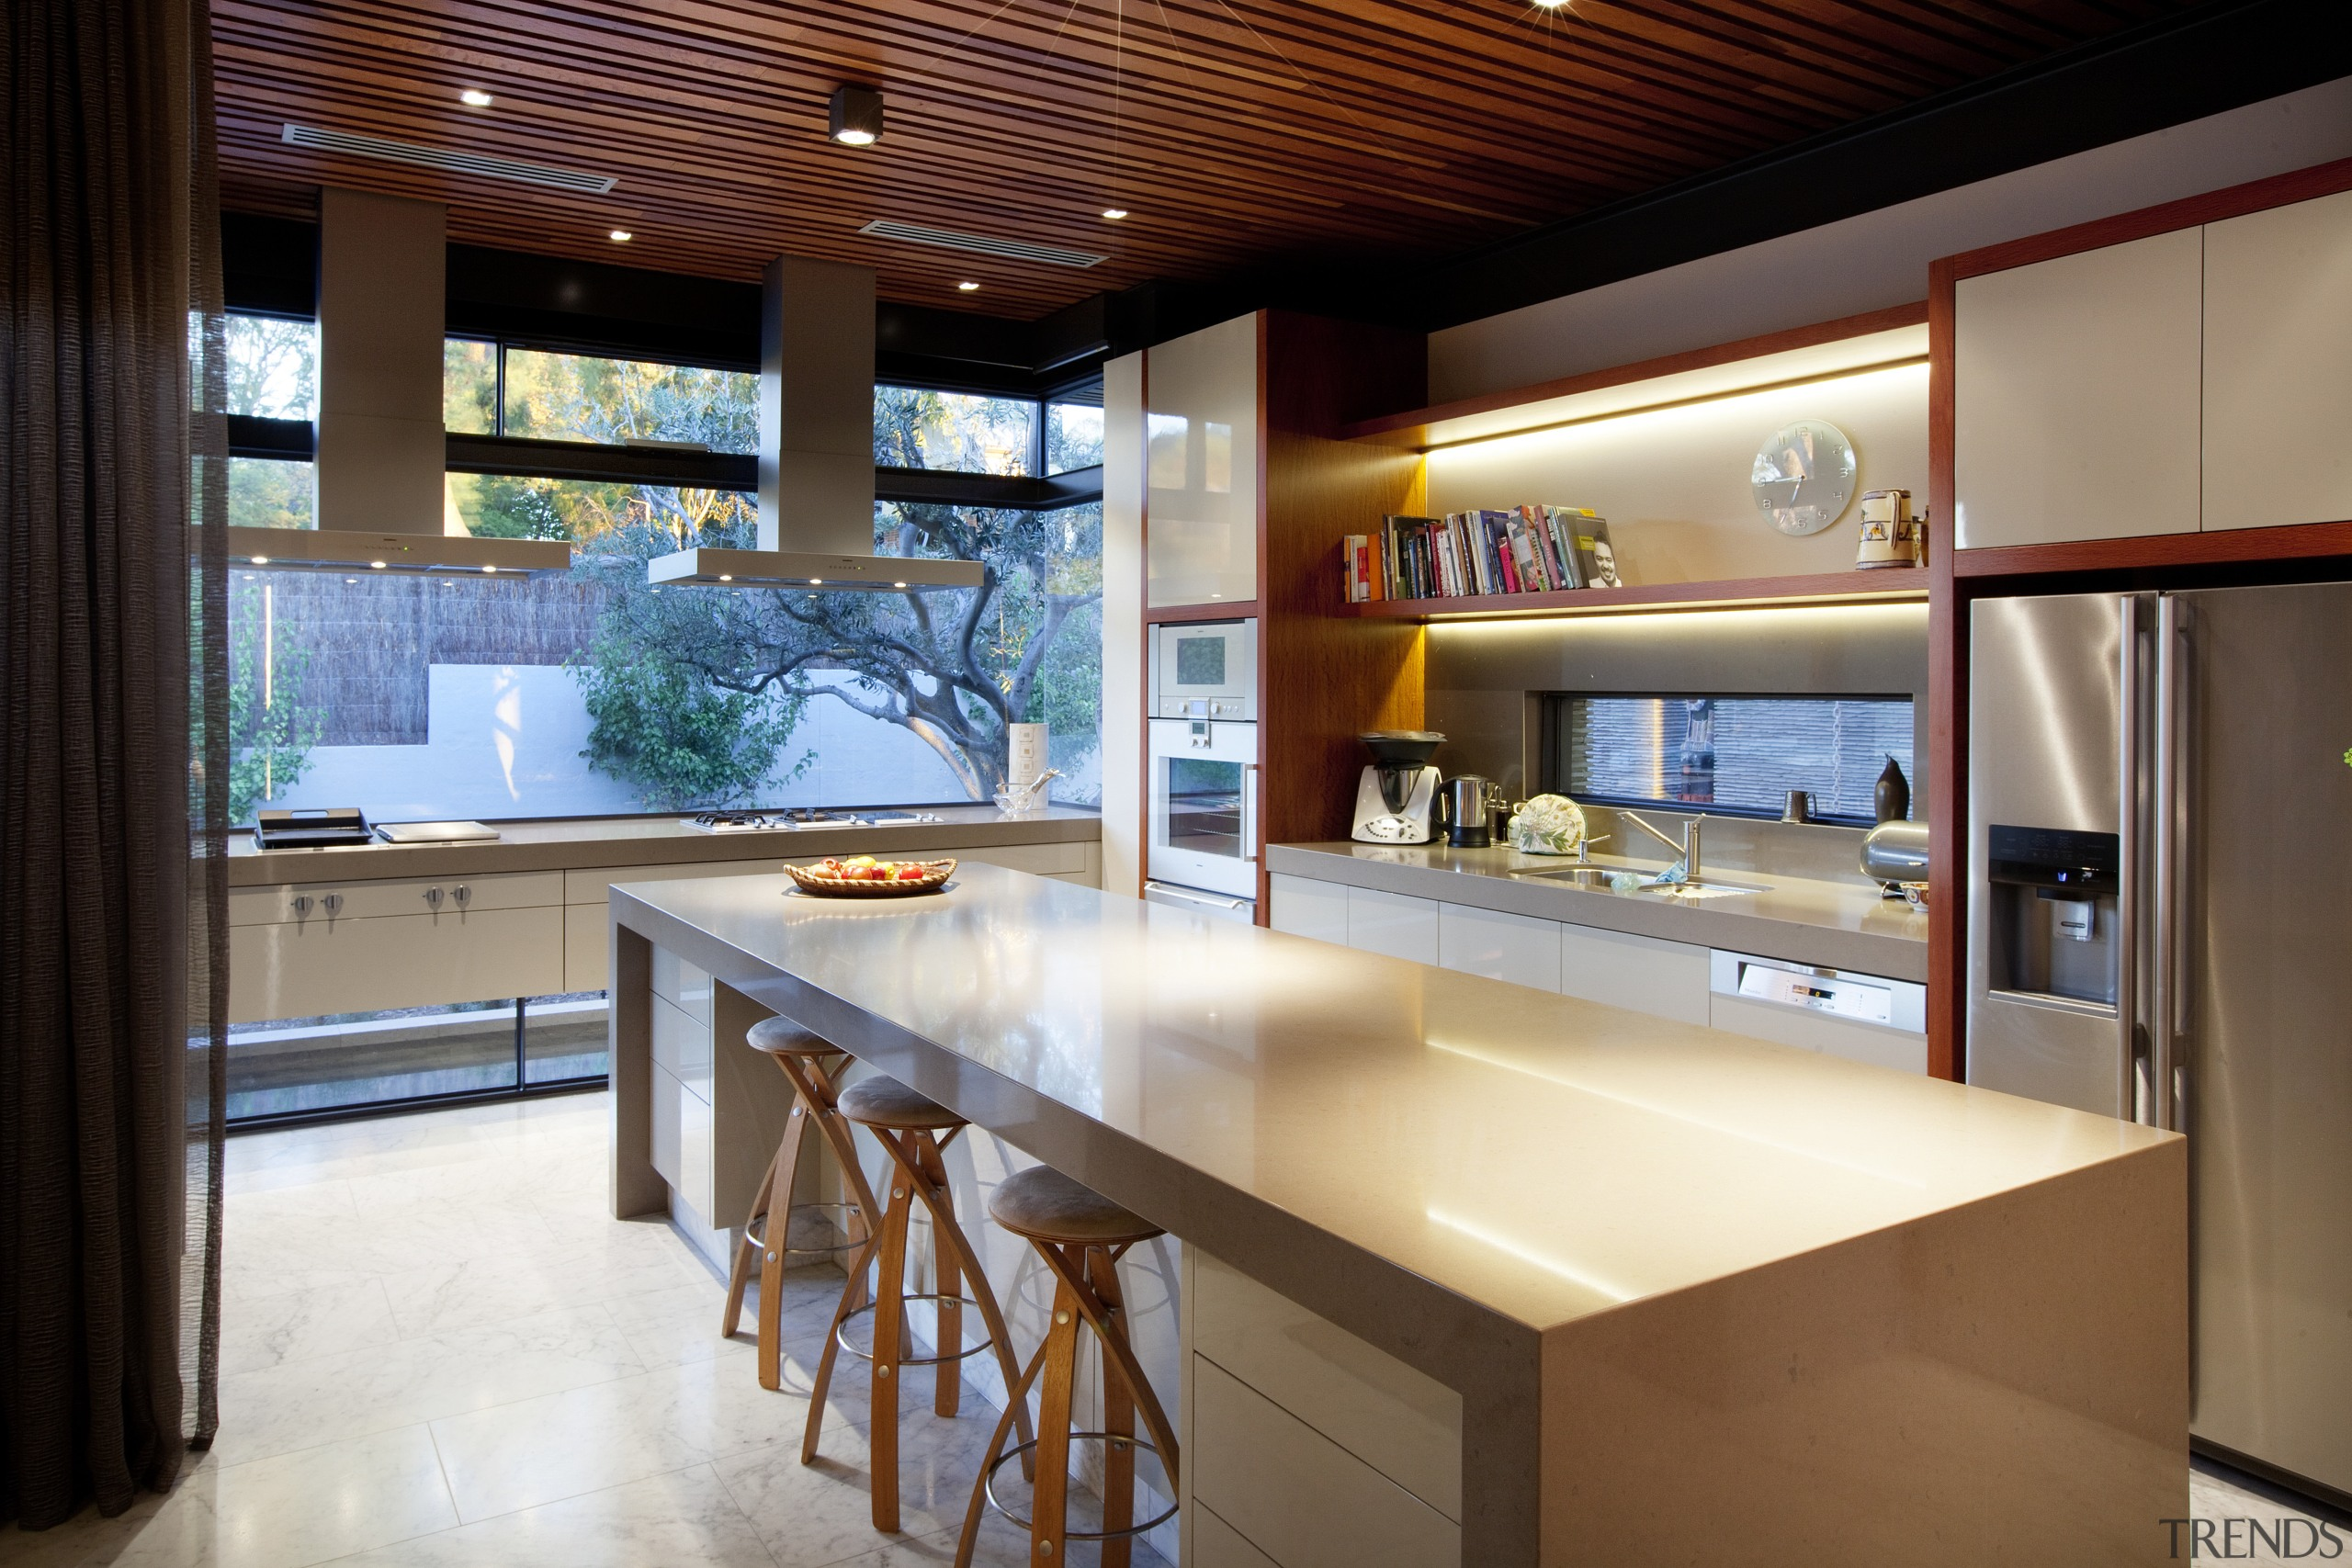 Twin rangehoods and a cantilevered cabinet are key countertop, interior design, kitchen, real estate, black